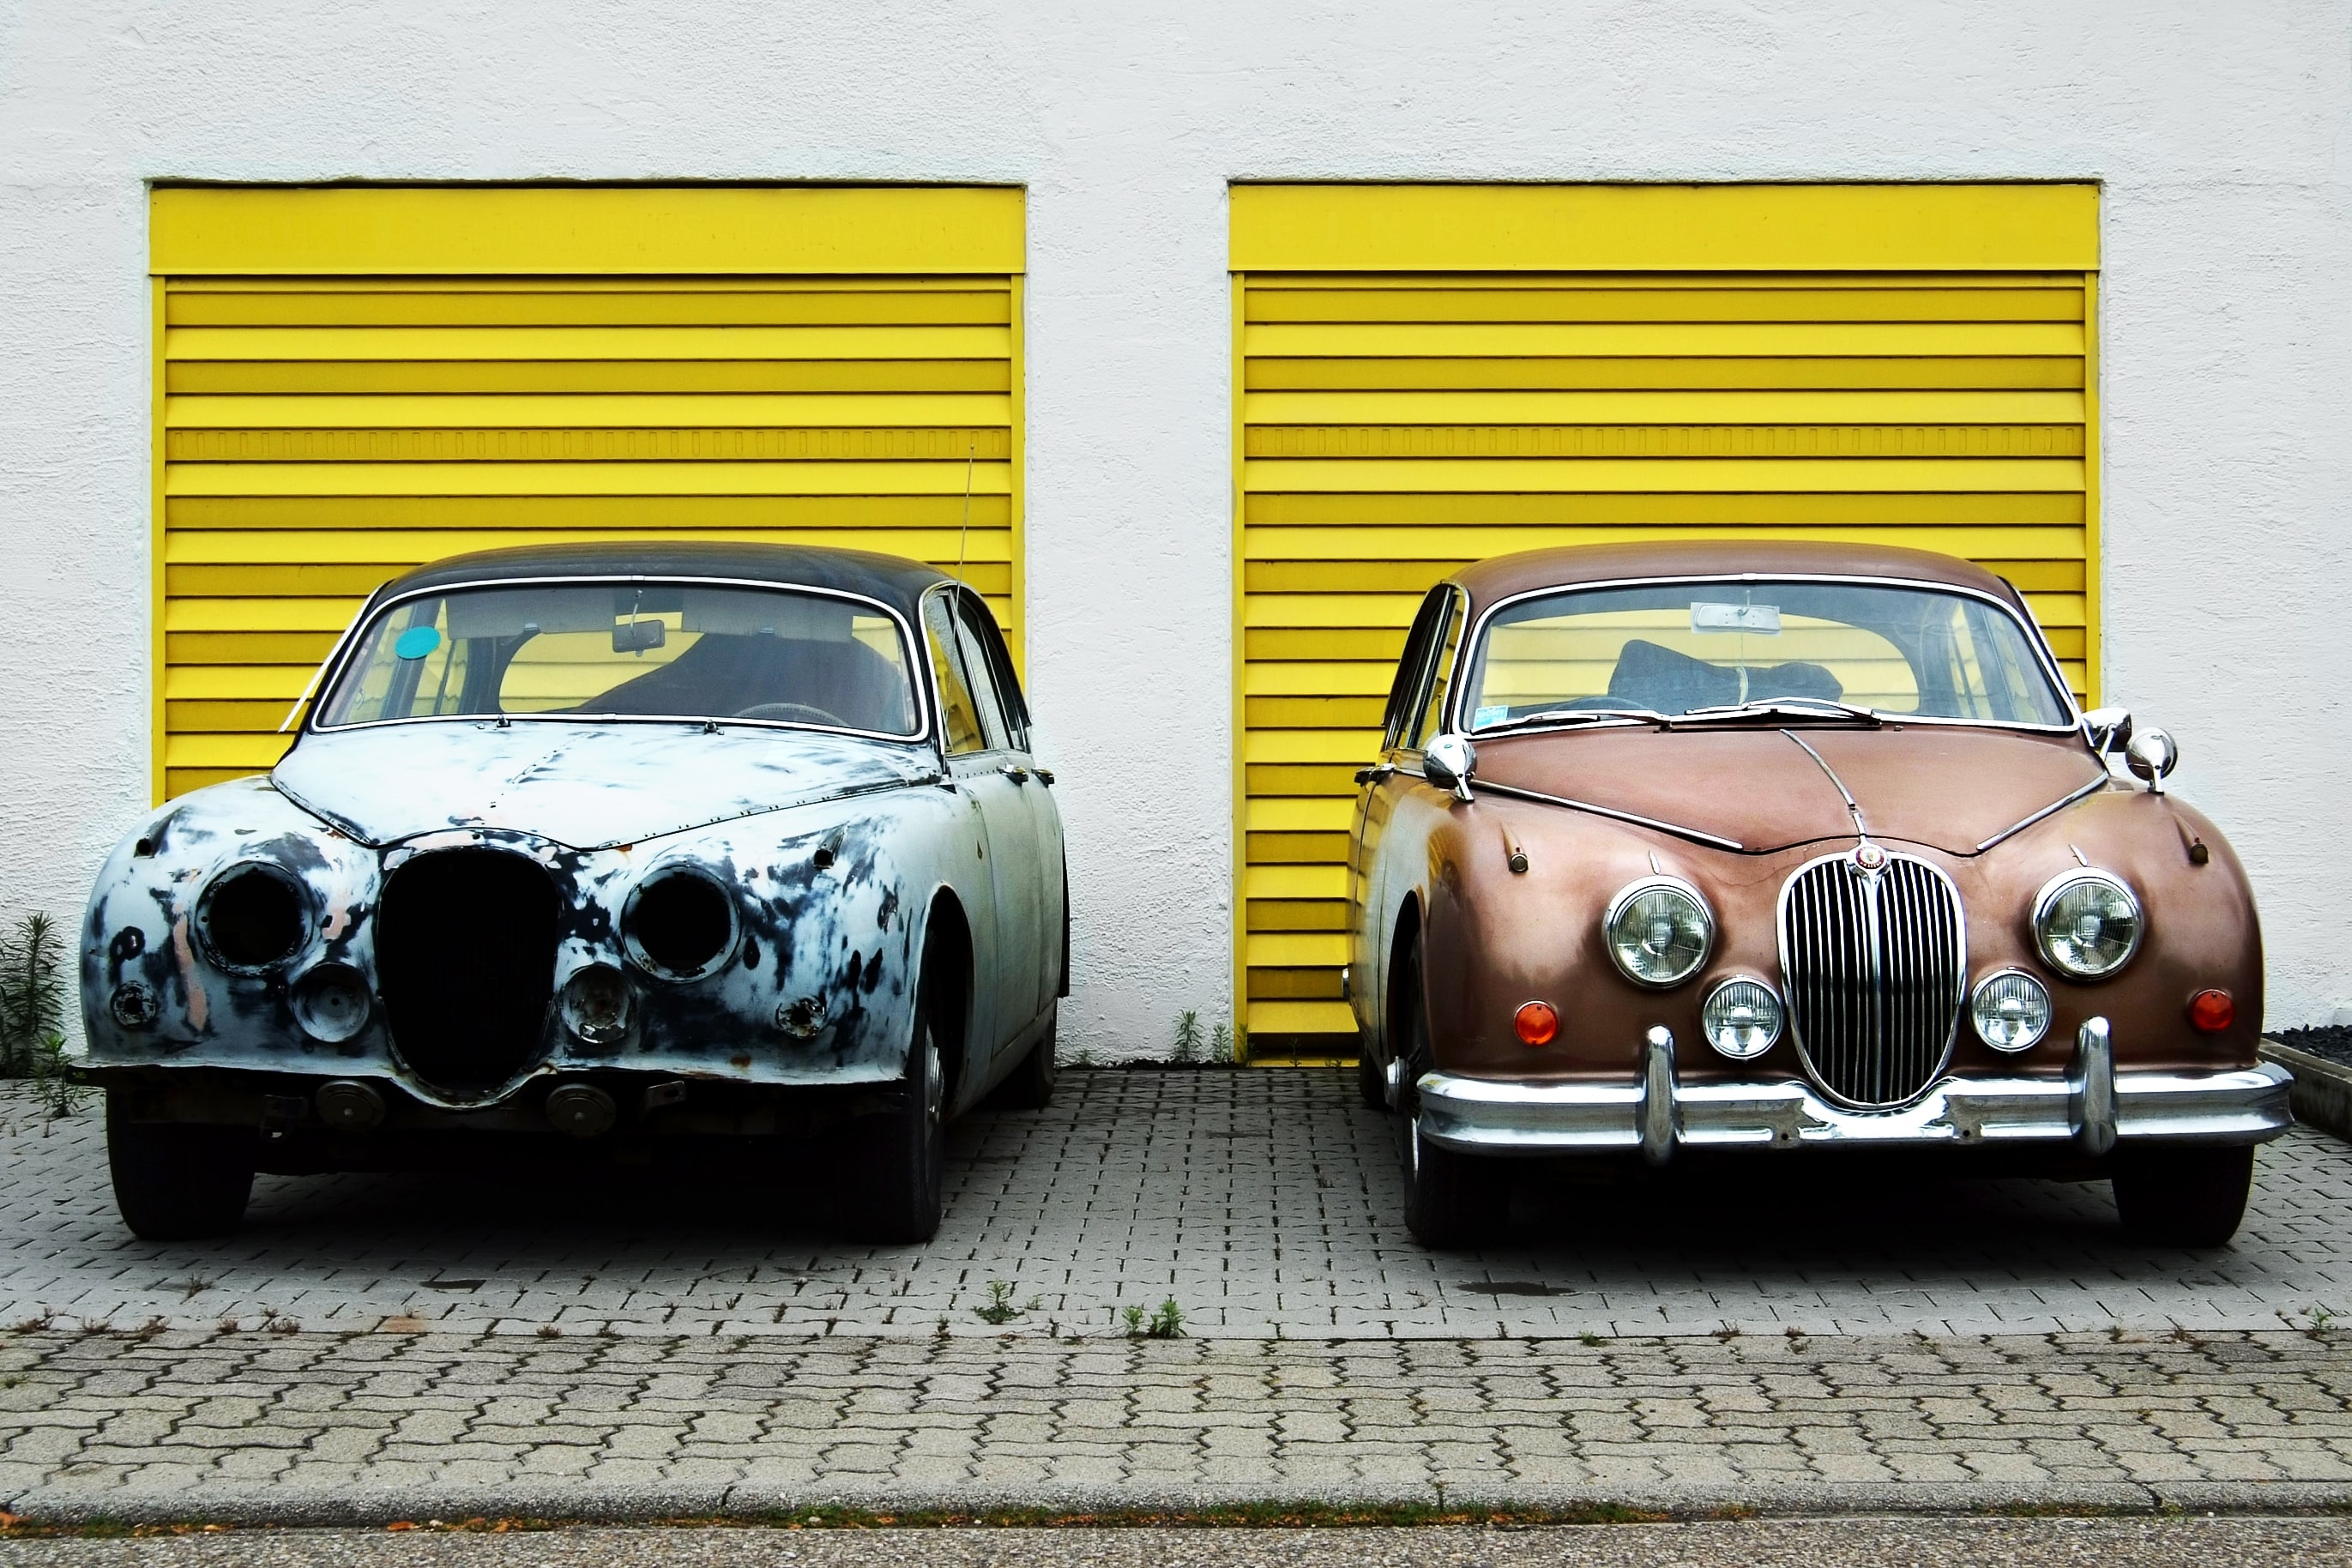 Damaged and repaired antique retro classic cars parked in front of yellow garages